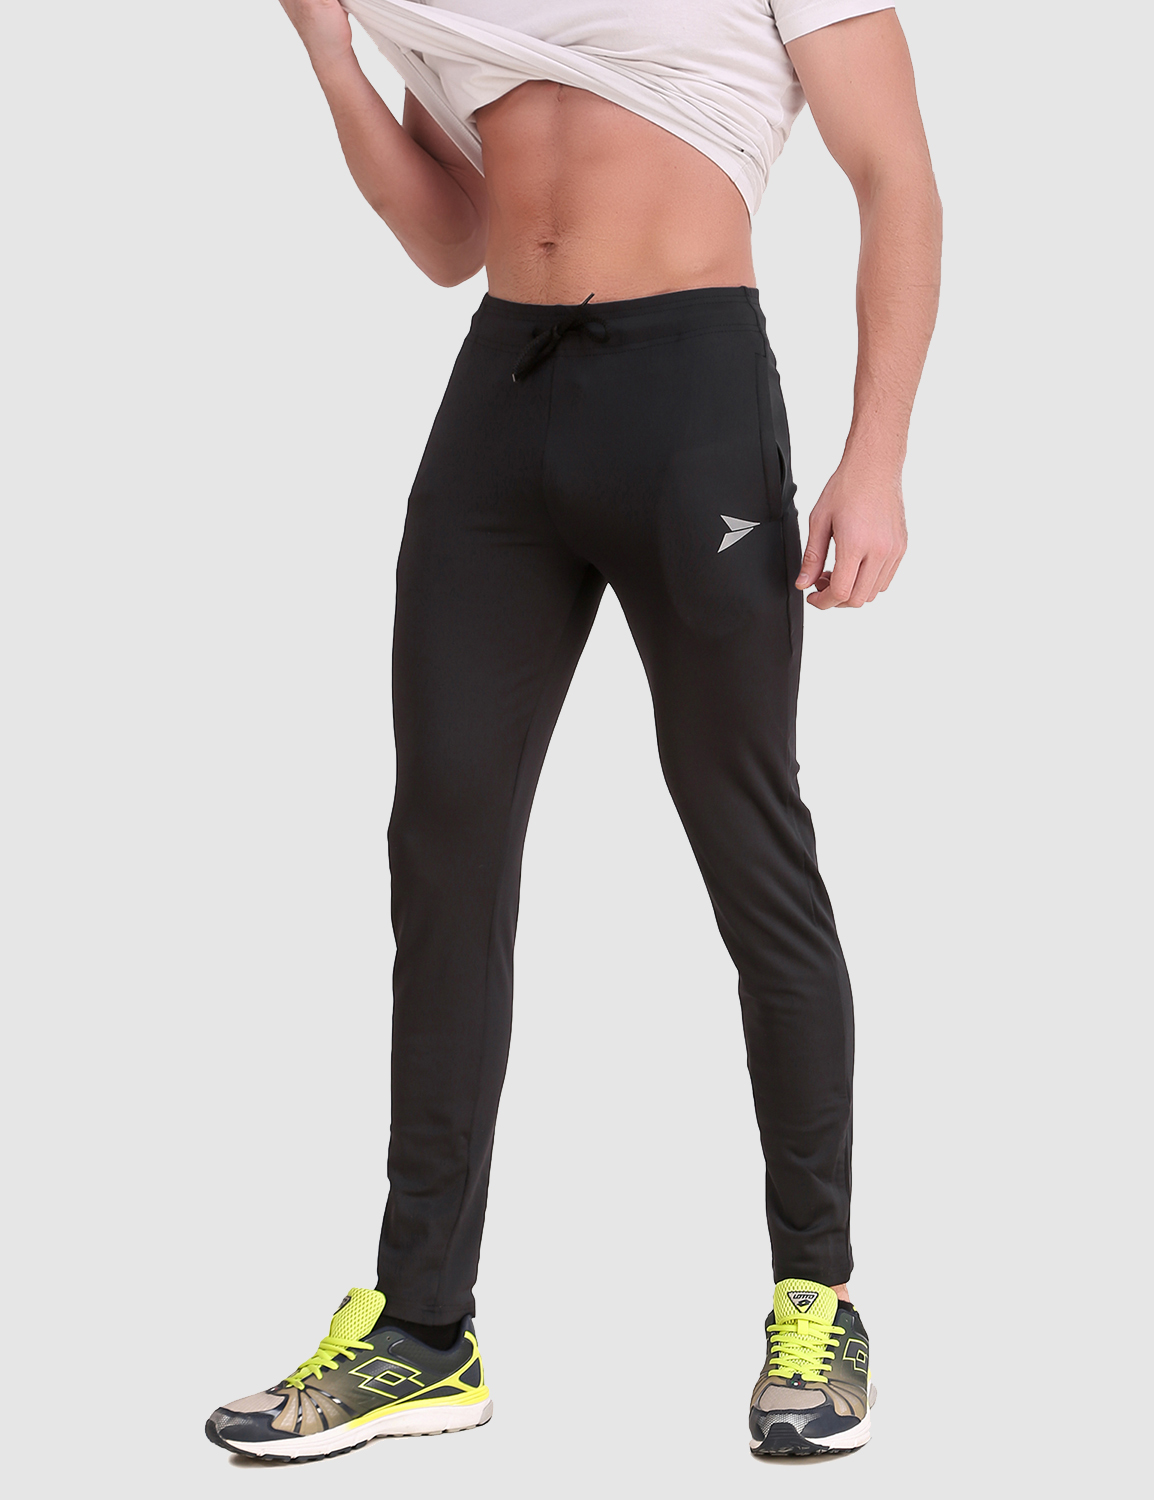 Fitinc | Fitinc Slim Fit Black Track Pant for Workout